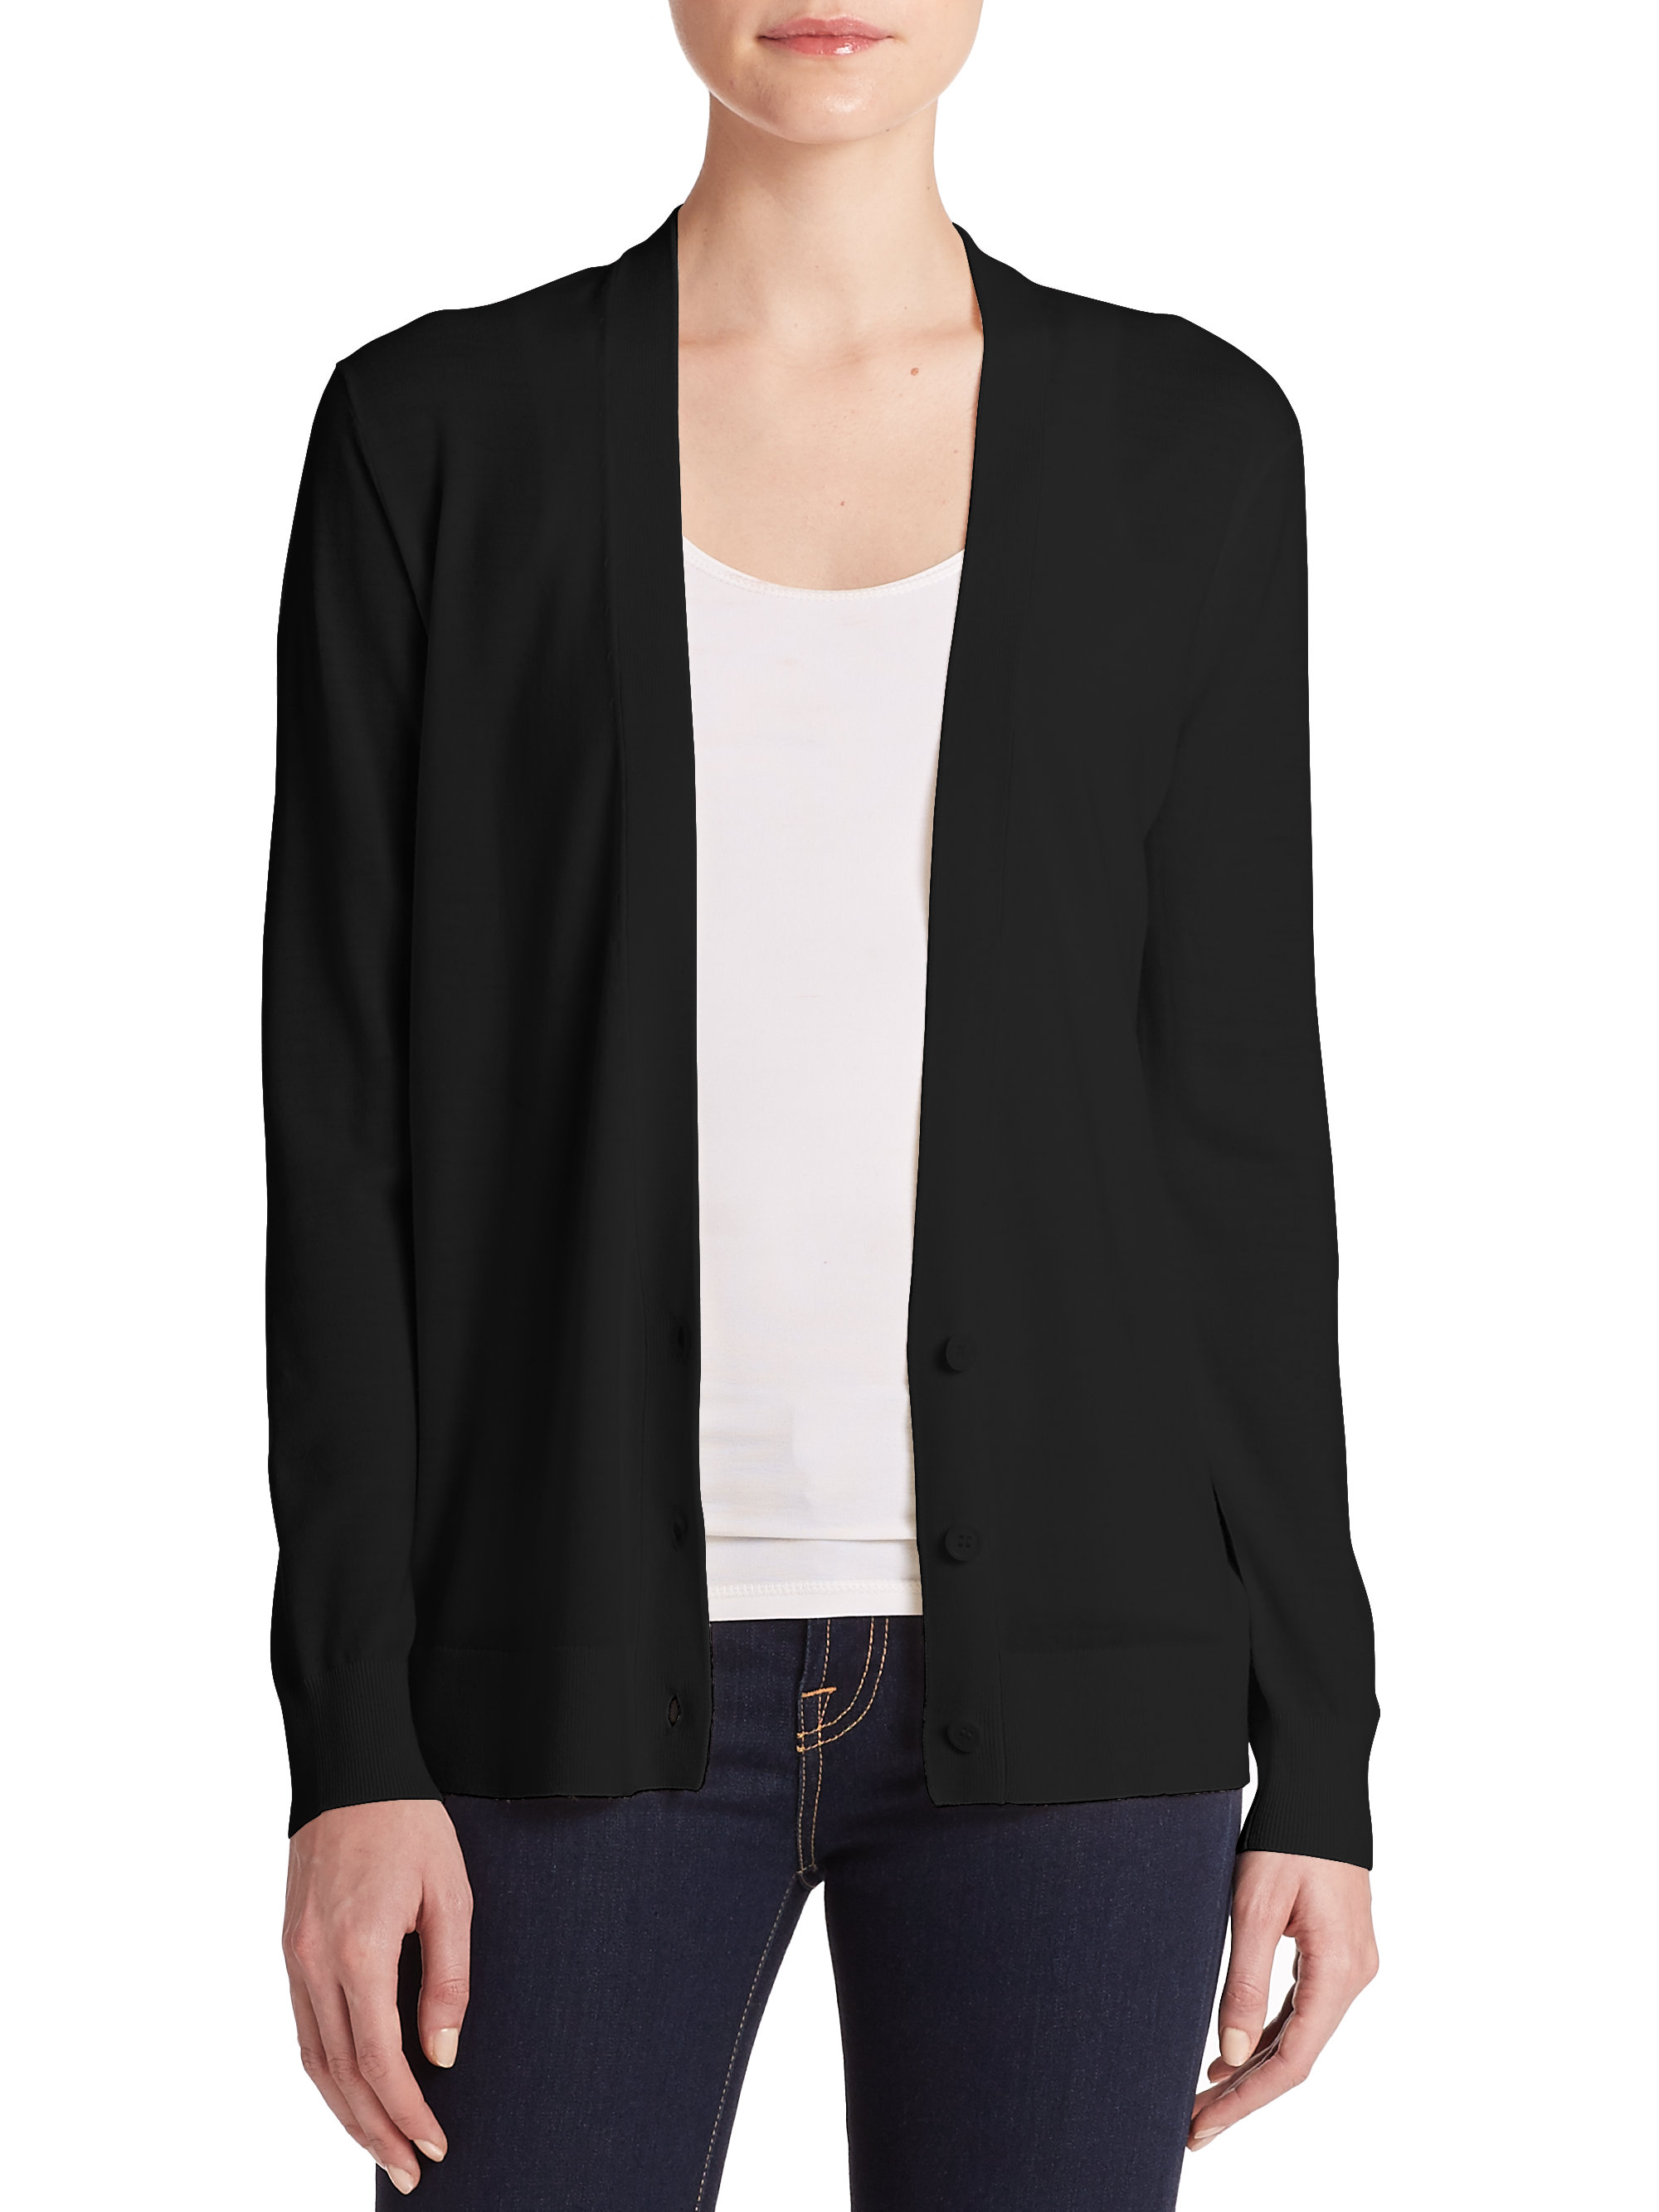 Women'S Black V Neck Cardigan - Cashmere Sweater England